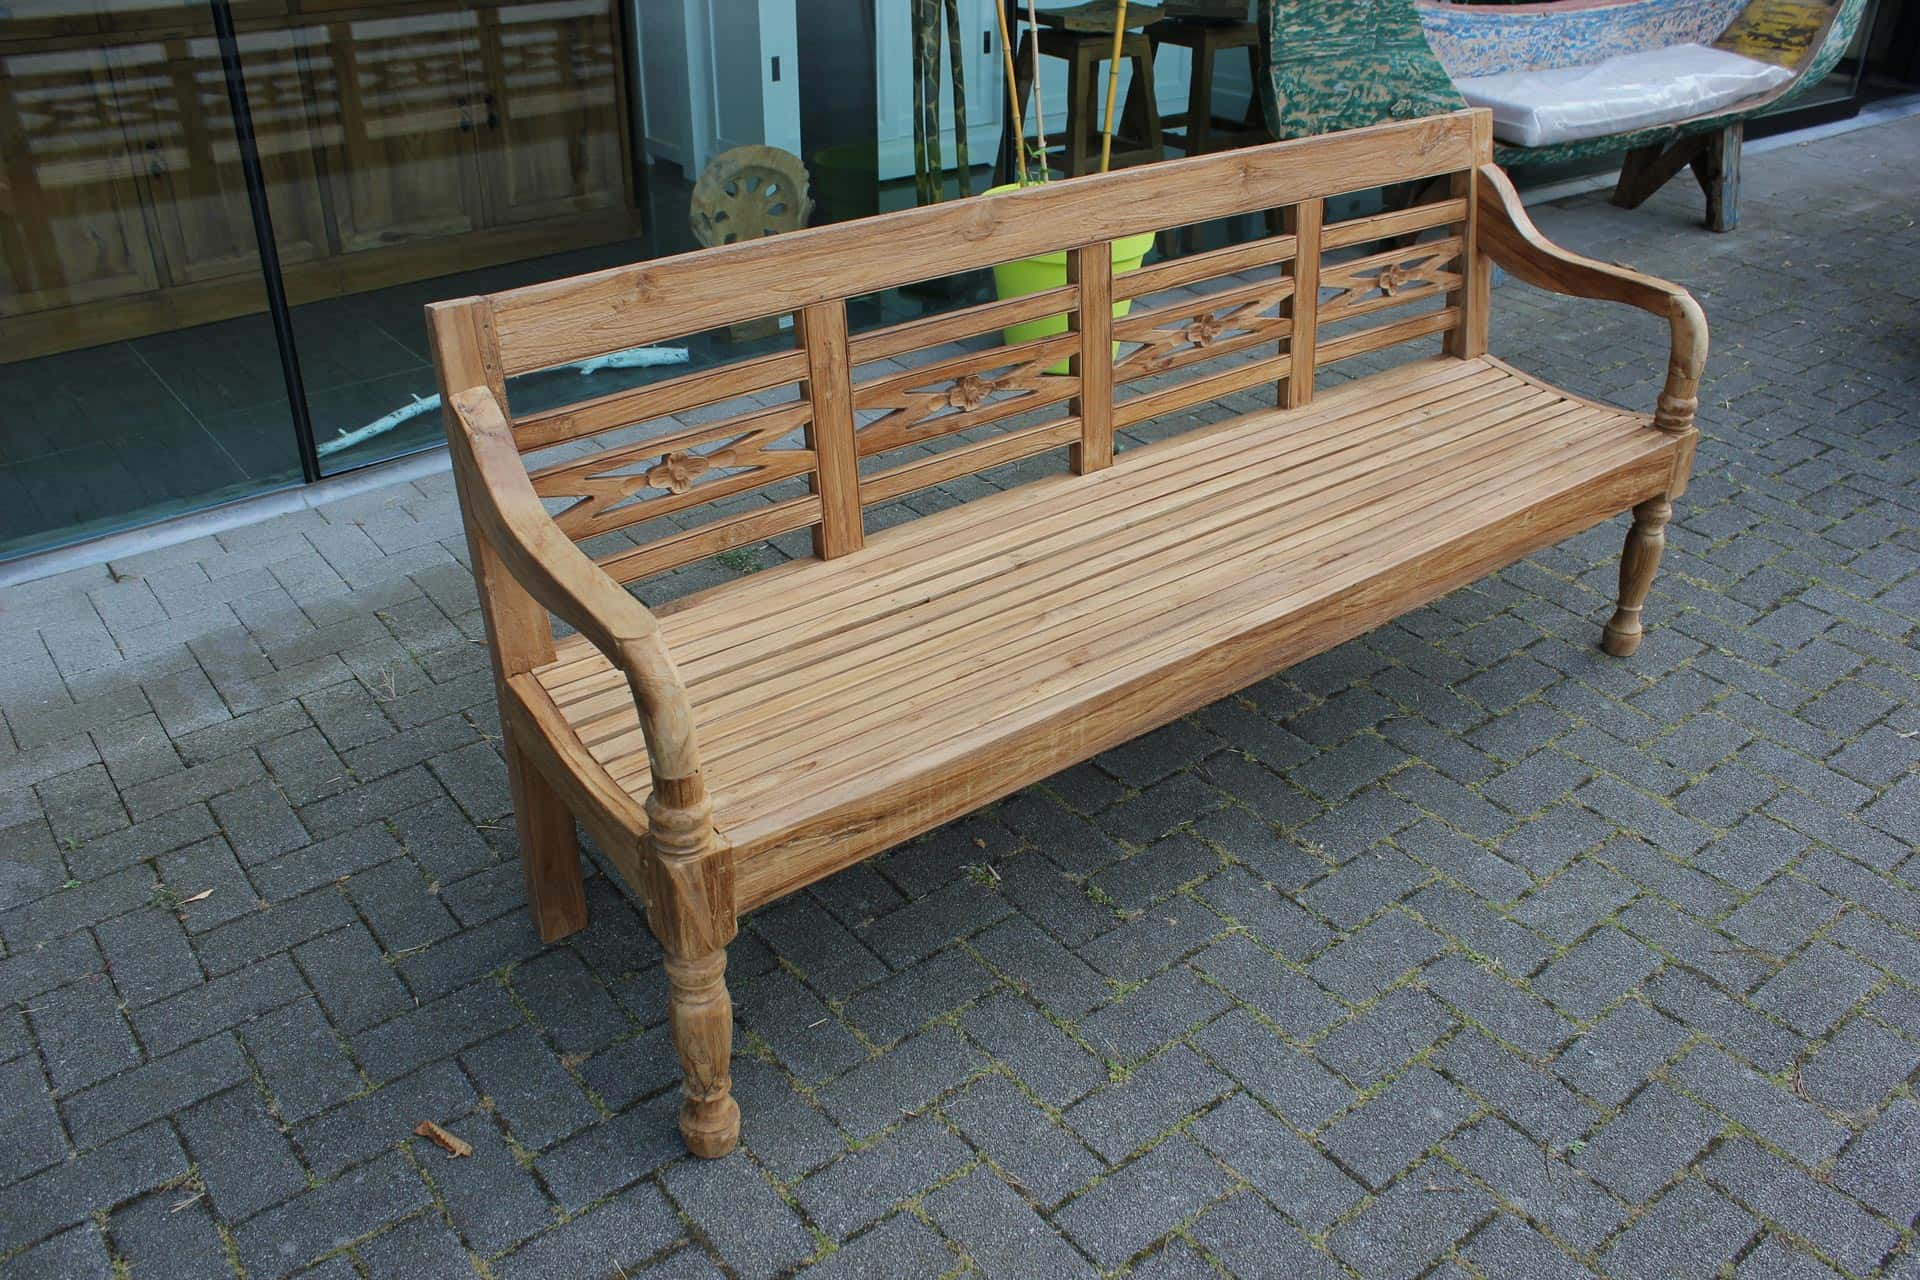 Bangku Bunga O190 Old | luxury teak station bench. Teak garden bench in different sizes, quality & craftsmanship from Indonesia - TEAK2.